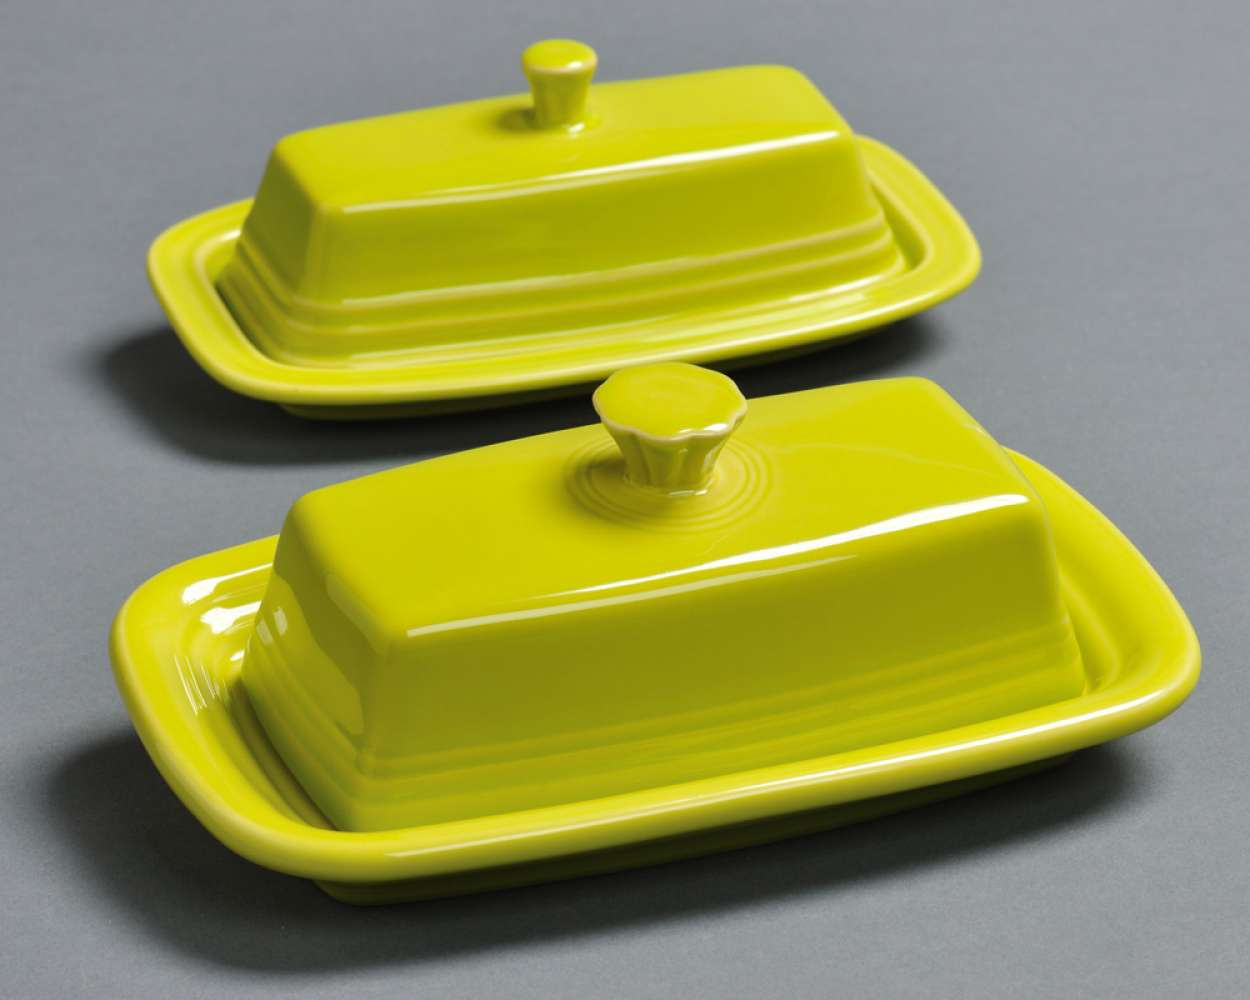 Awesome Collections Of Fiestaware For Dinnerware Ideas: Fiestaware Extra Large Butter Dish Tabletop Gourmet Retailer For Serveware Ideas